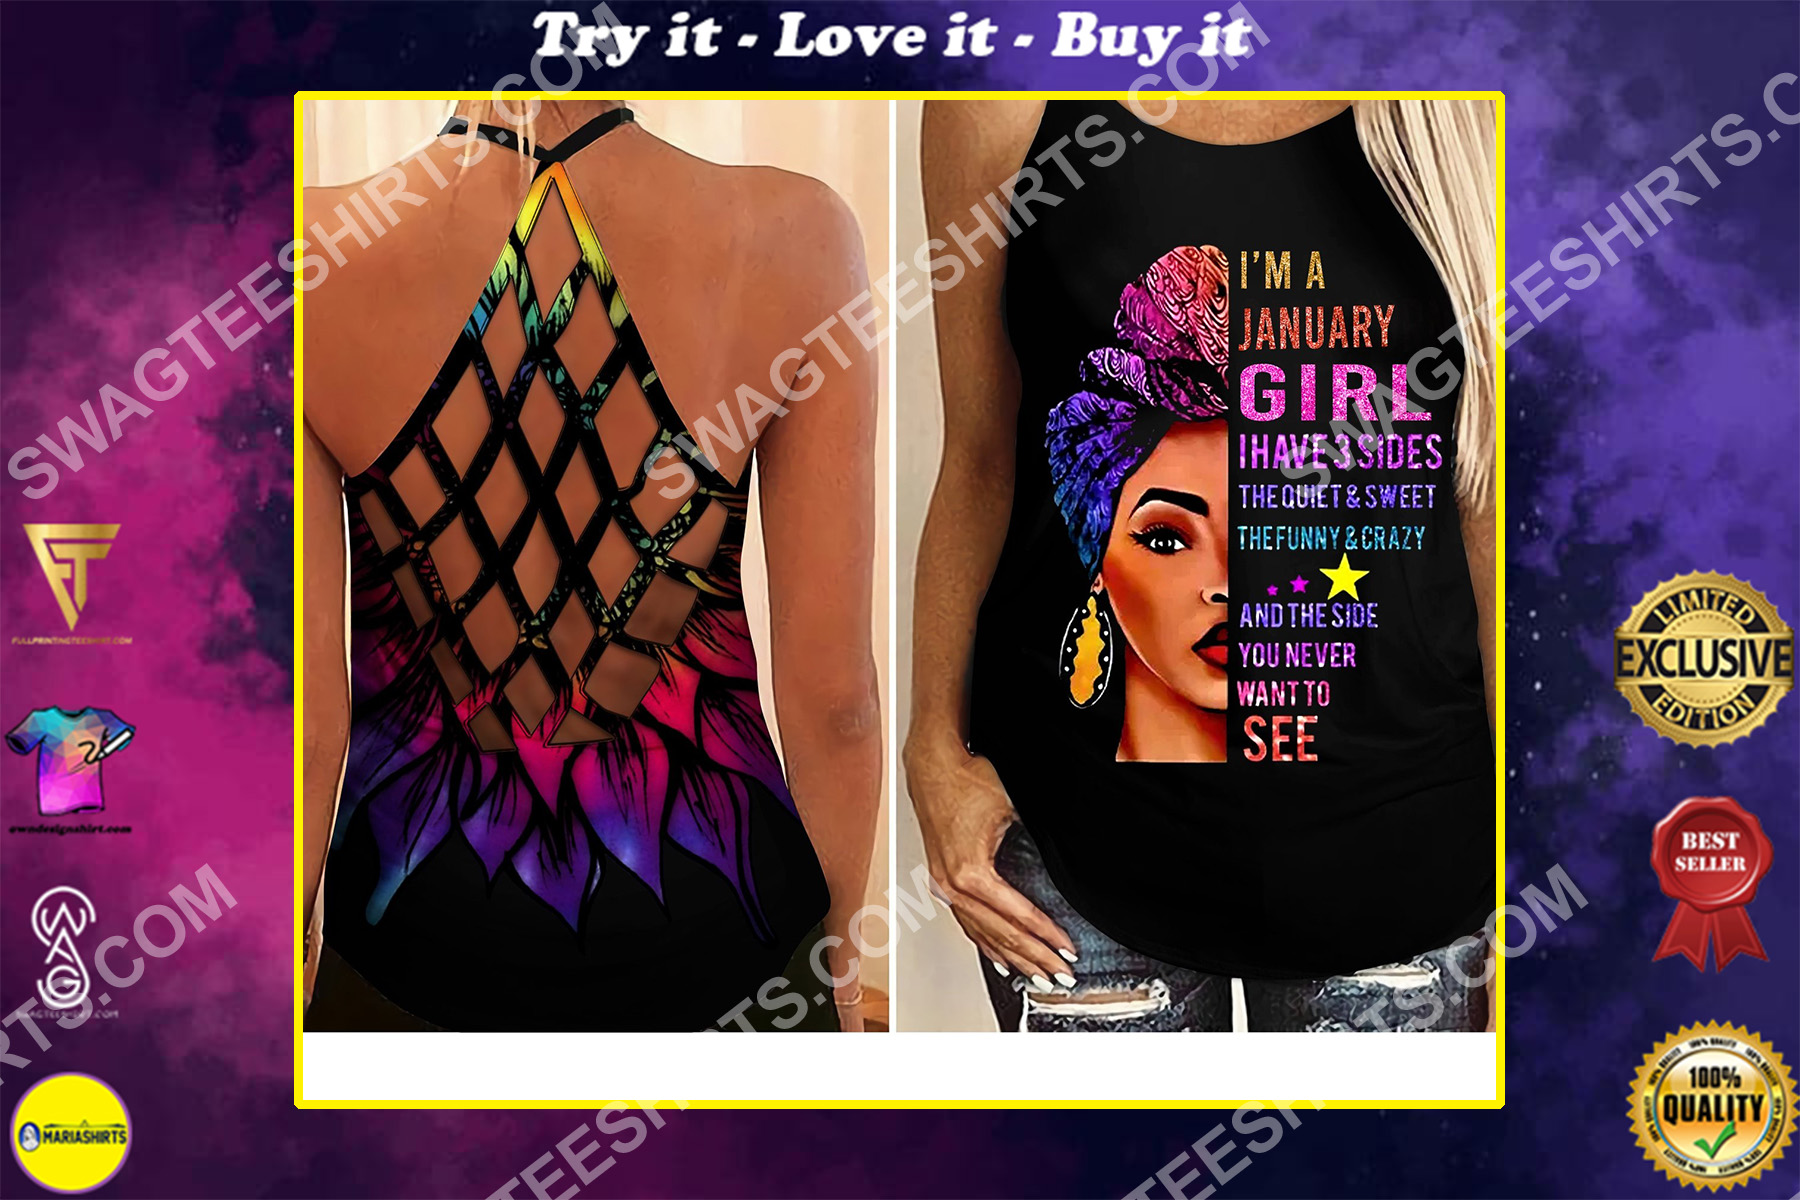 i'm a january girl i have 3 sides the quiet and sweet all over printed criss-cross tank top